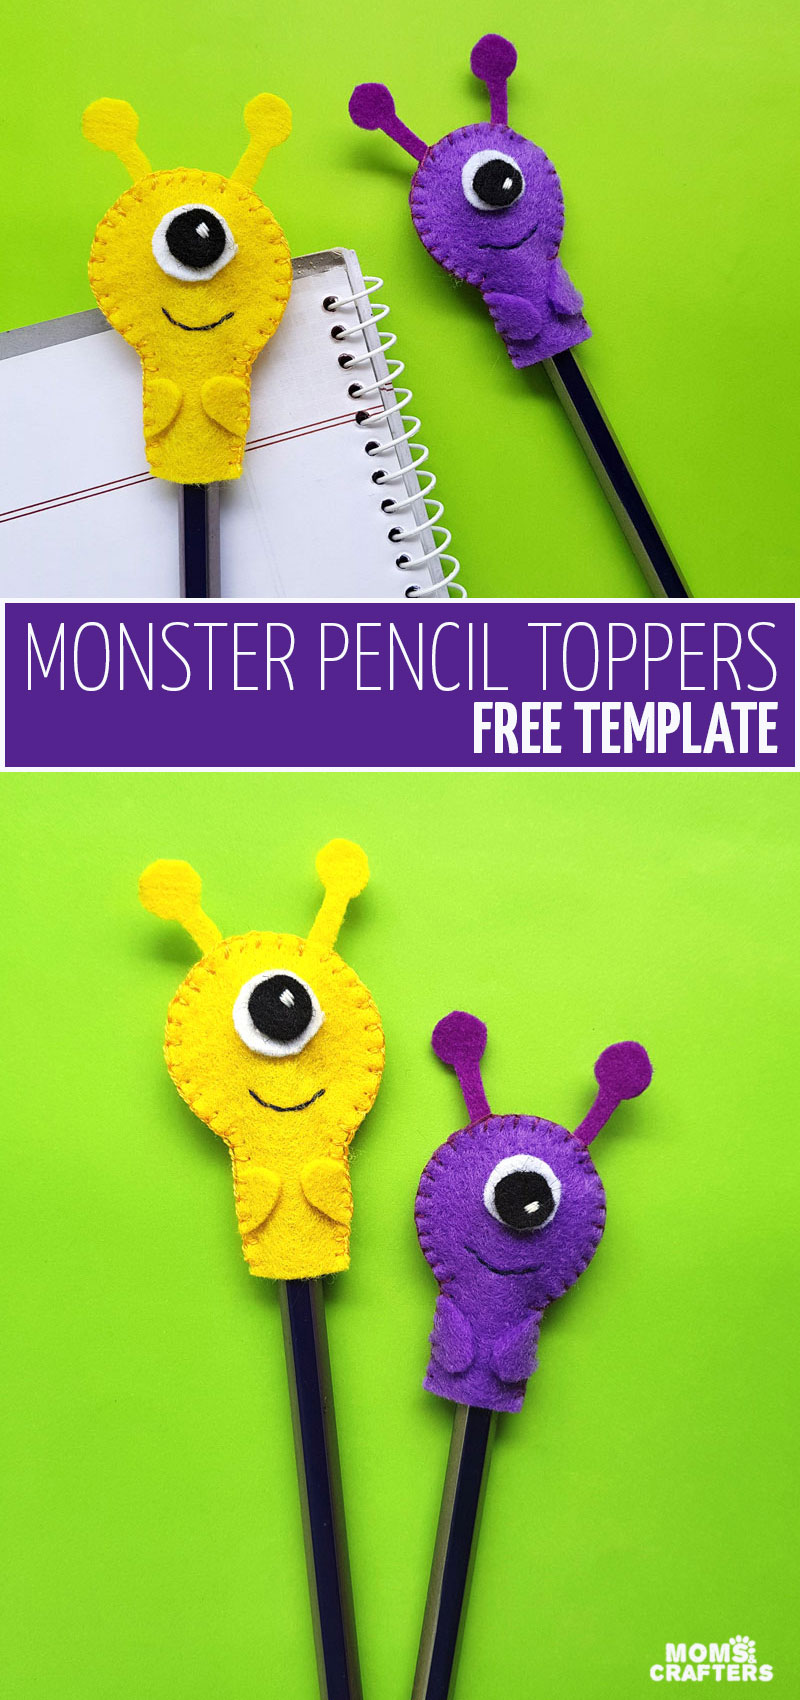 Craft some DIY school supplies with this monster pencil toppers craft! These fun back to school crafts for teens, tweens, and big kids are super fun adn great for Halloween or monster party favors too.